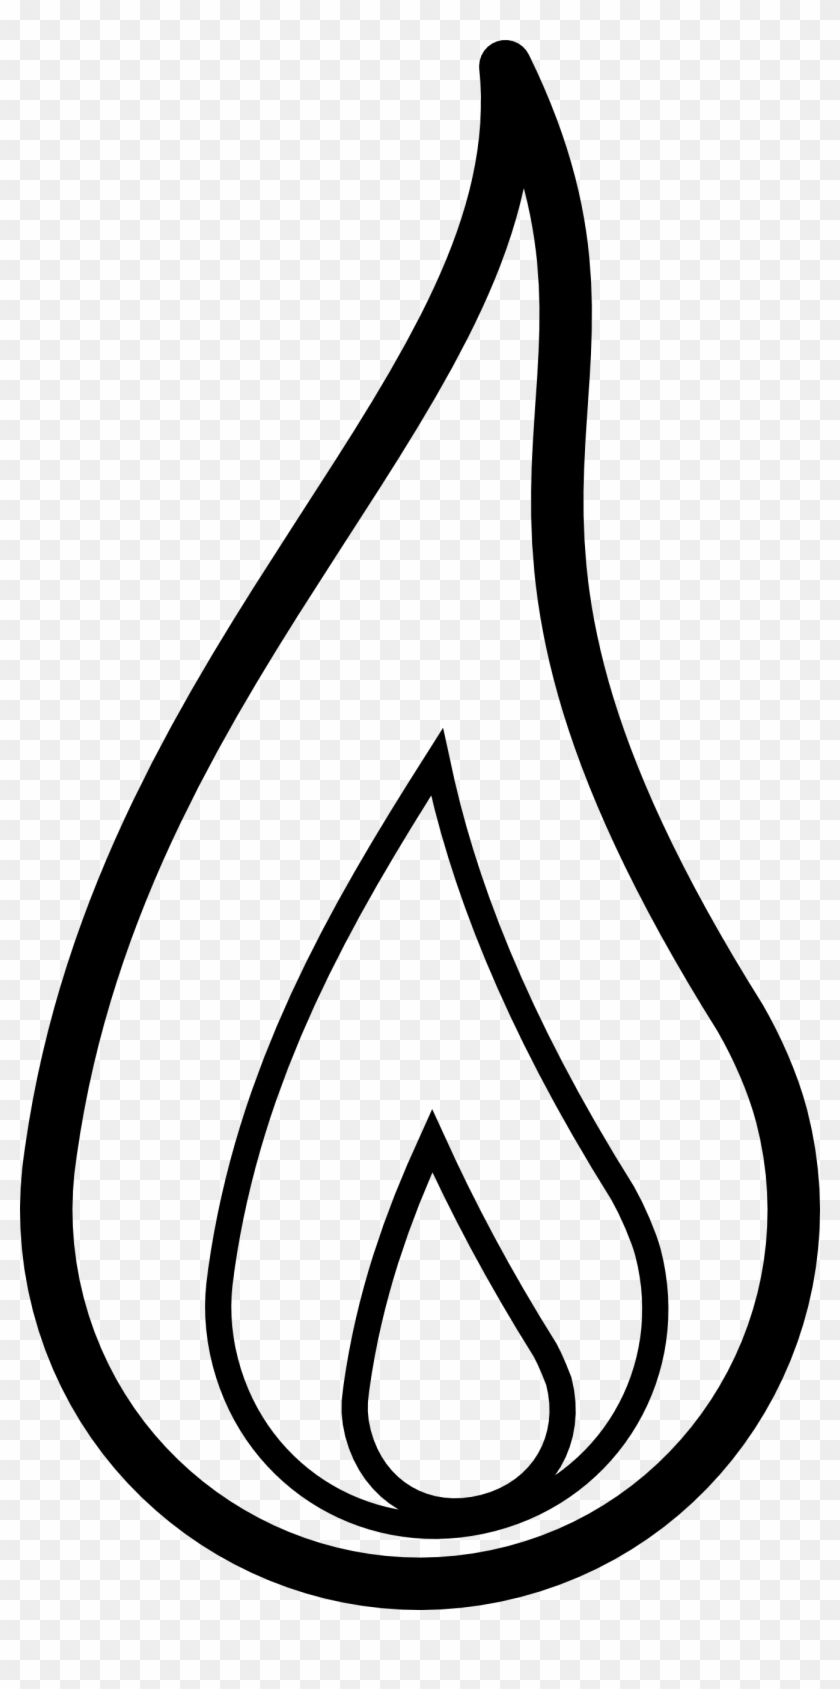 flame black white line clipart - flame clipart black and white